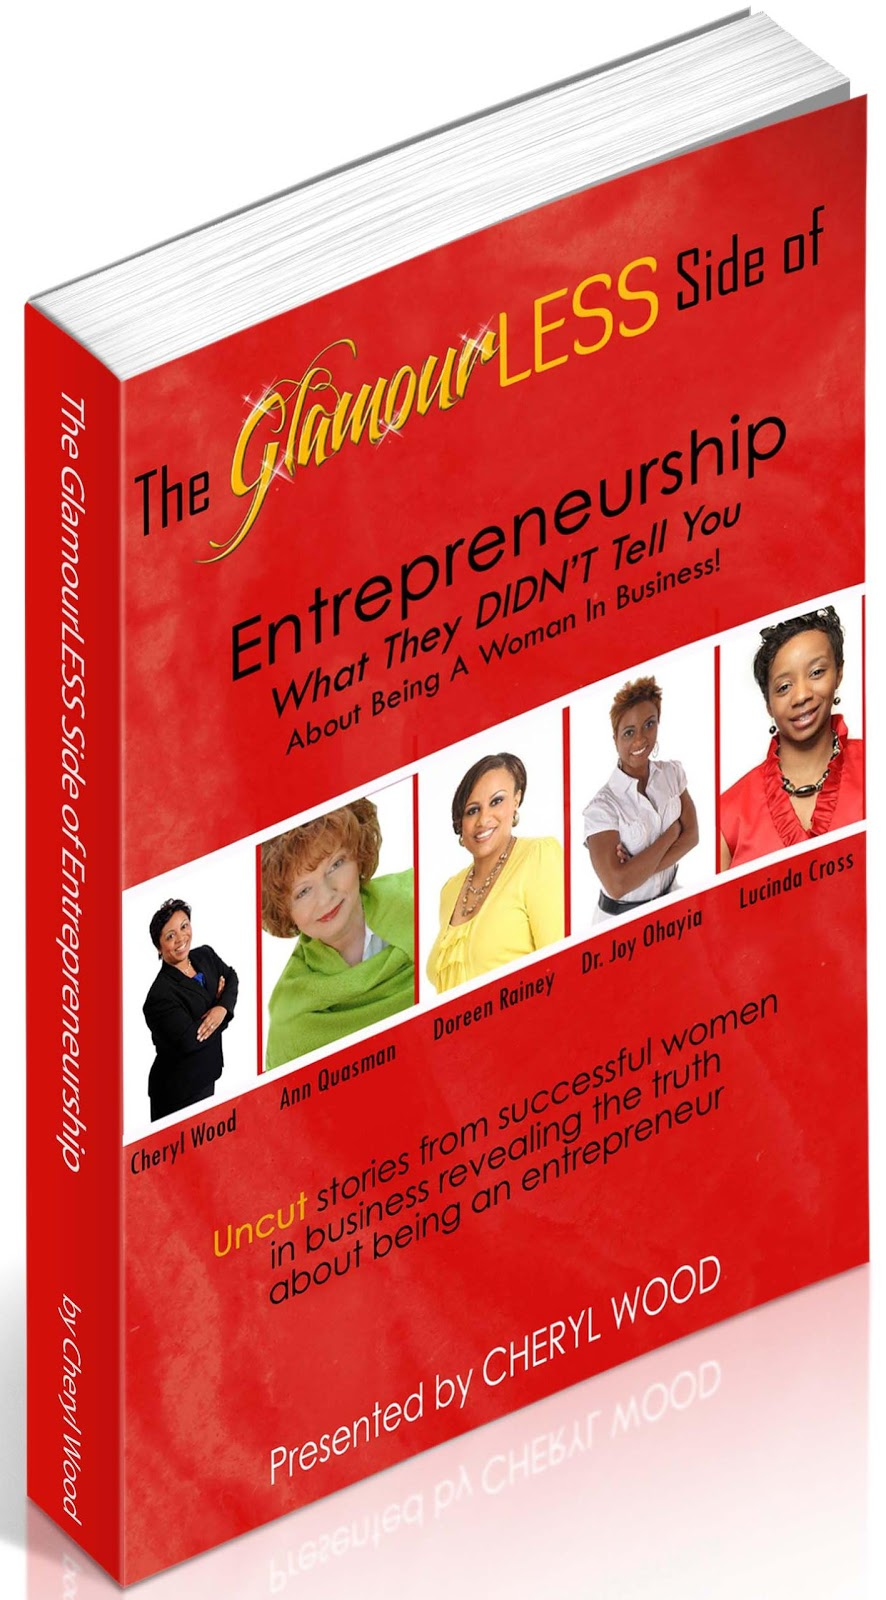 The GlamourLESS Side of Entrepreneurship: What They Didnt Tell You About Being A Woman In Business